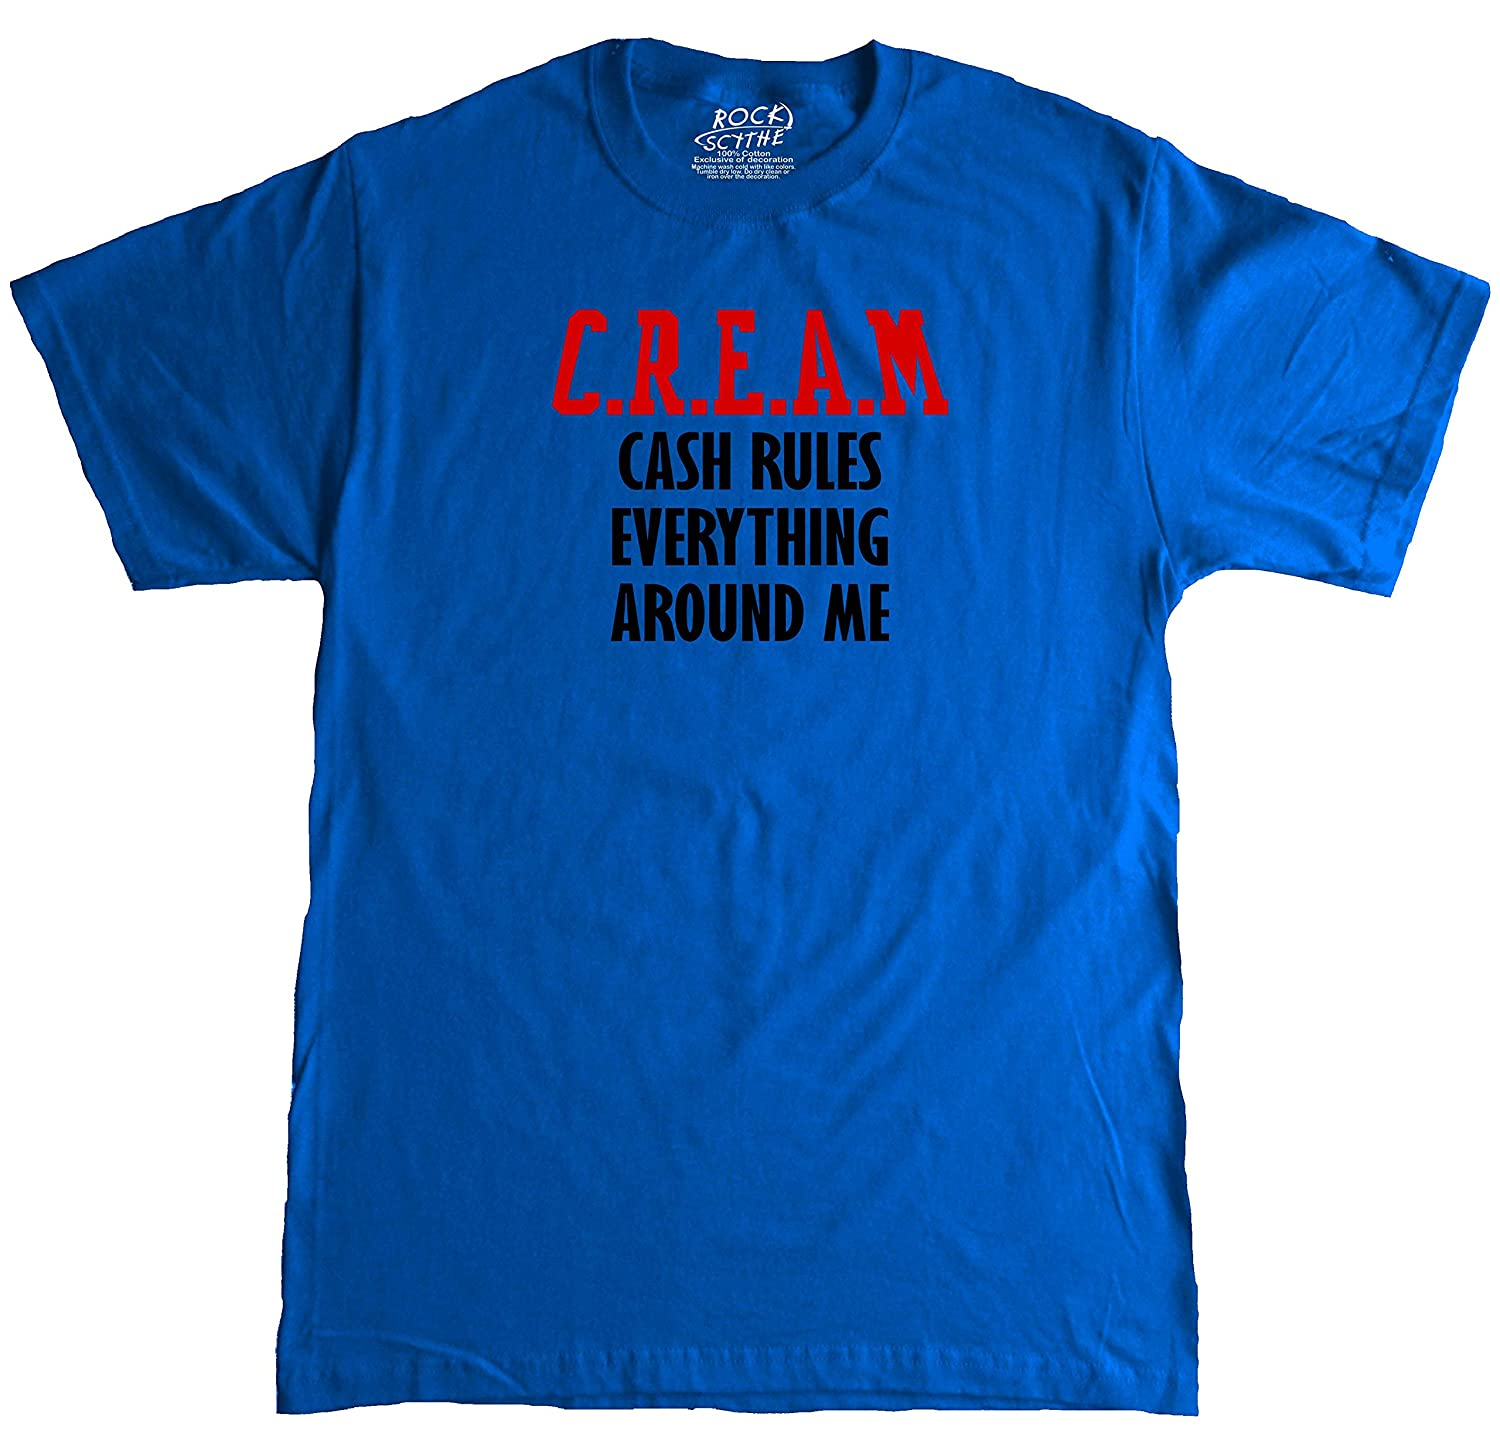 9046a374614 Rock Scythe -C.R.E.A.M Cash Rules Everything Around Me Adult T-Shirt Tee